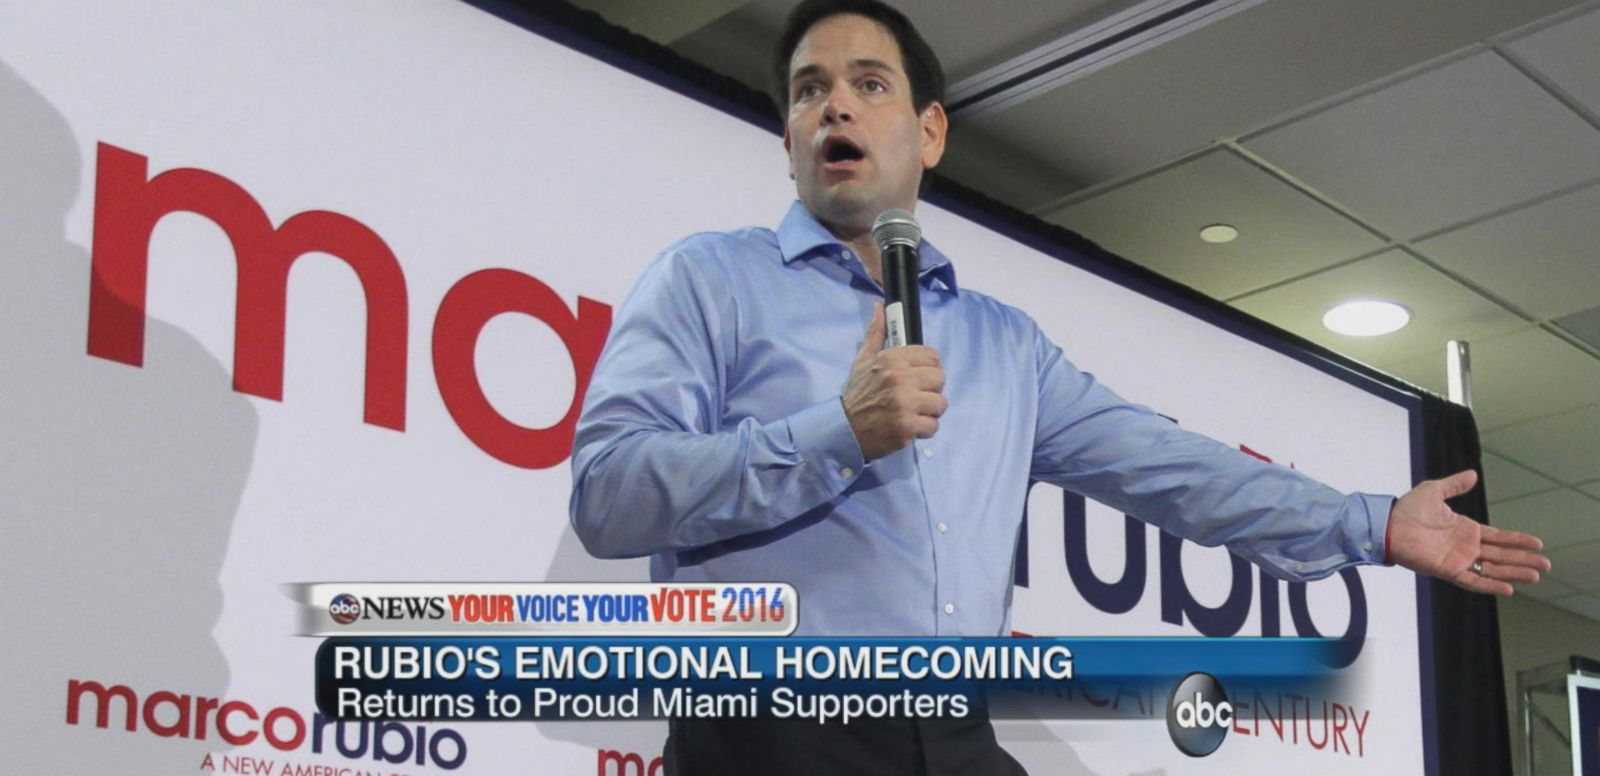 VIDEO: An Emotional Homecoming for Marco Rubio